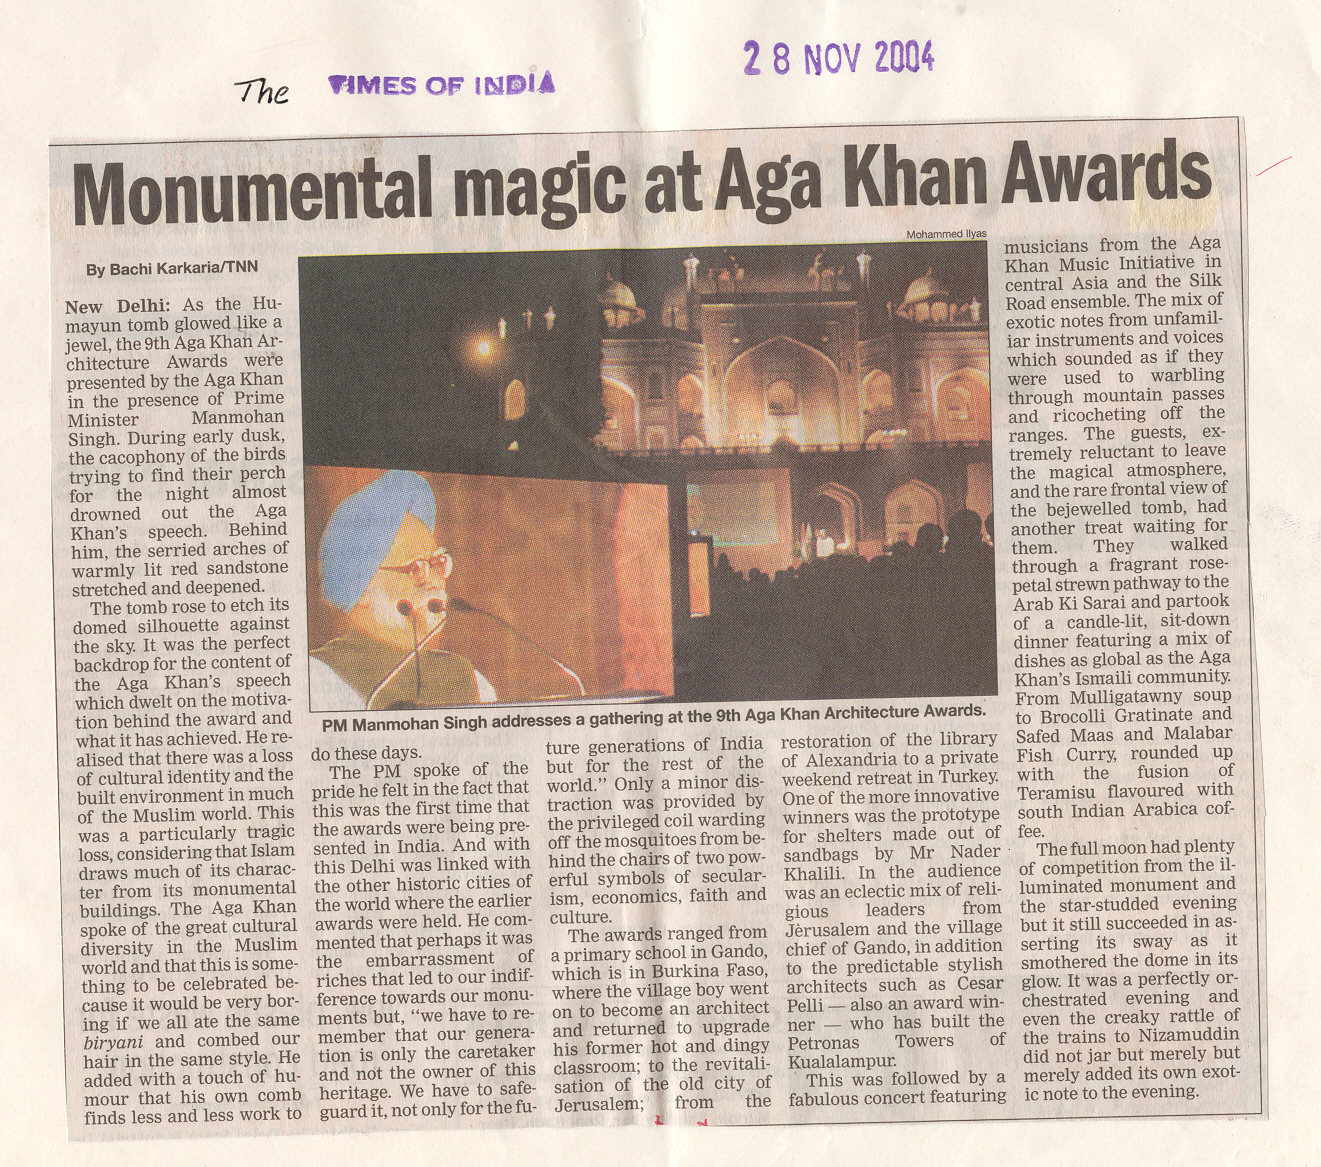 monumental magic at aga khan awards